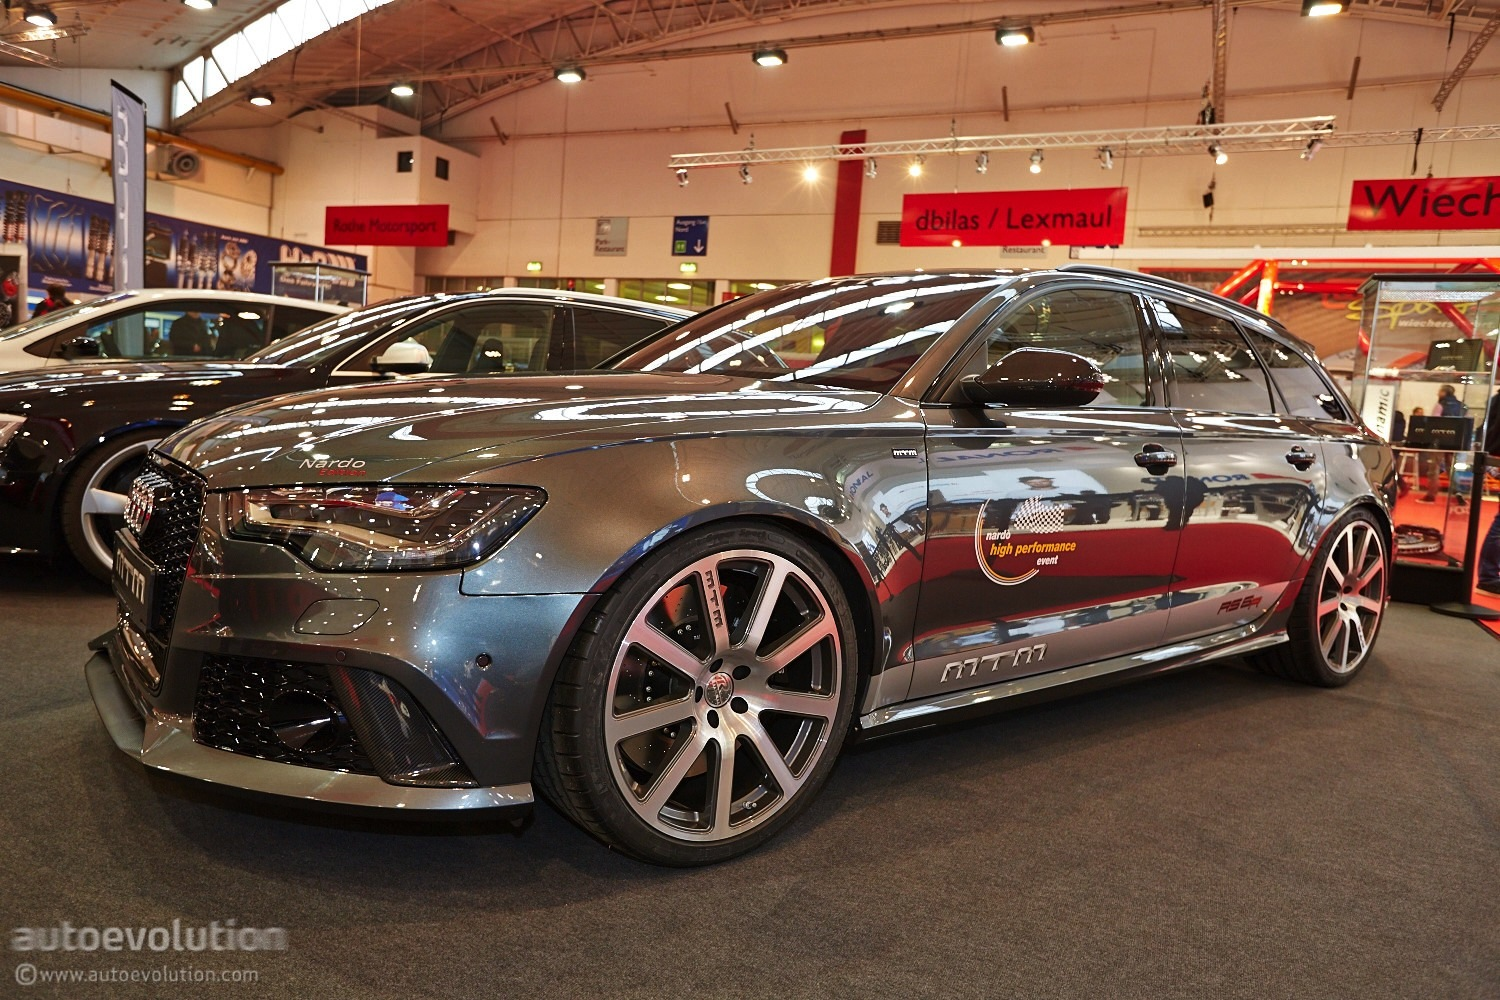 722 hp audi rs6 by mtm shows up at essen motor show 2013. Black Bedroom Furniture Sets. Home Design Ideas